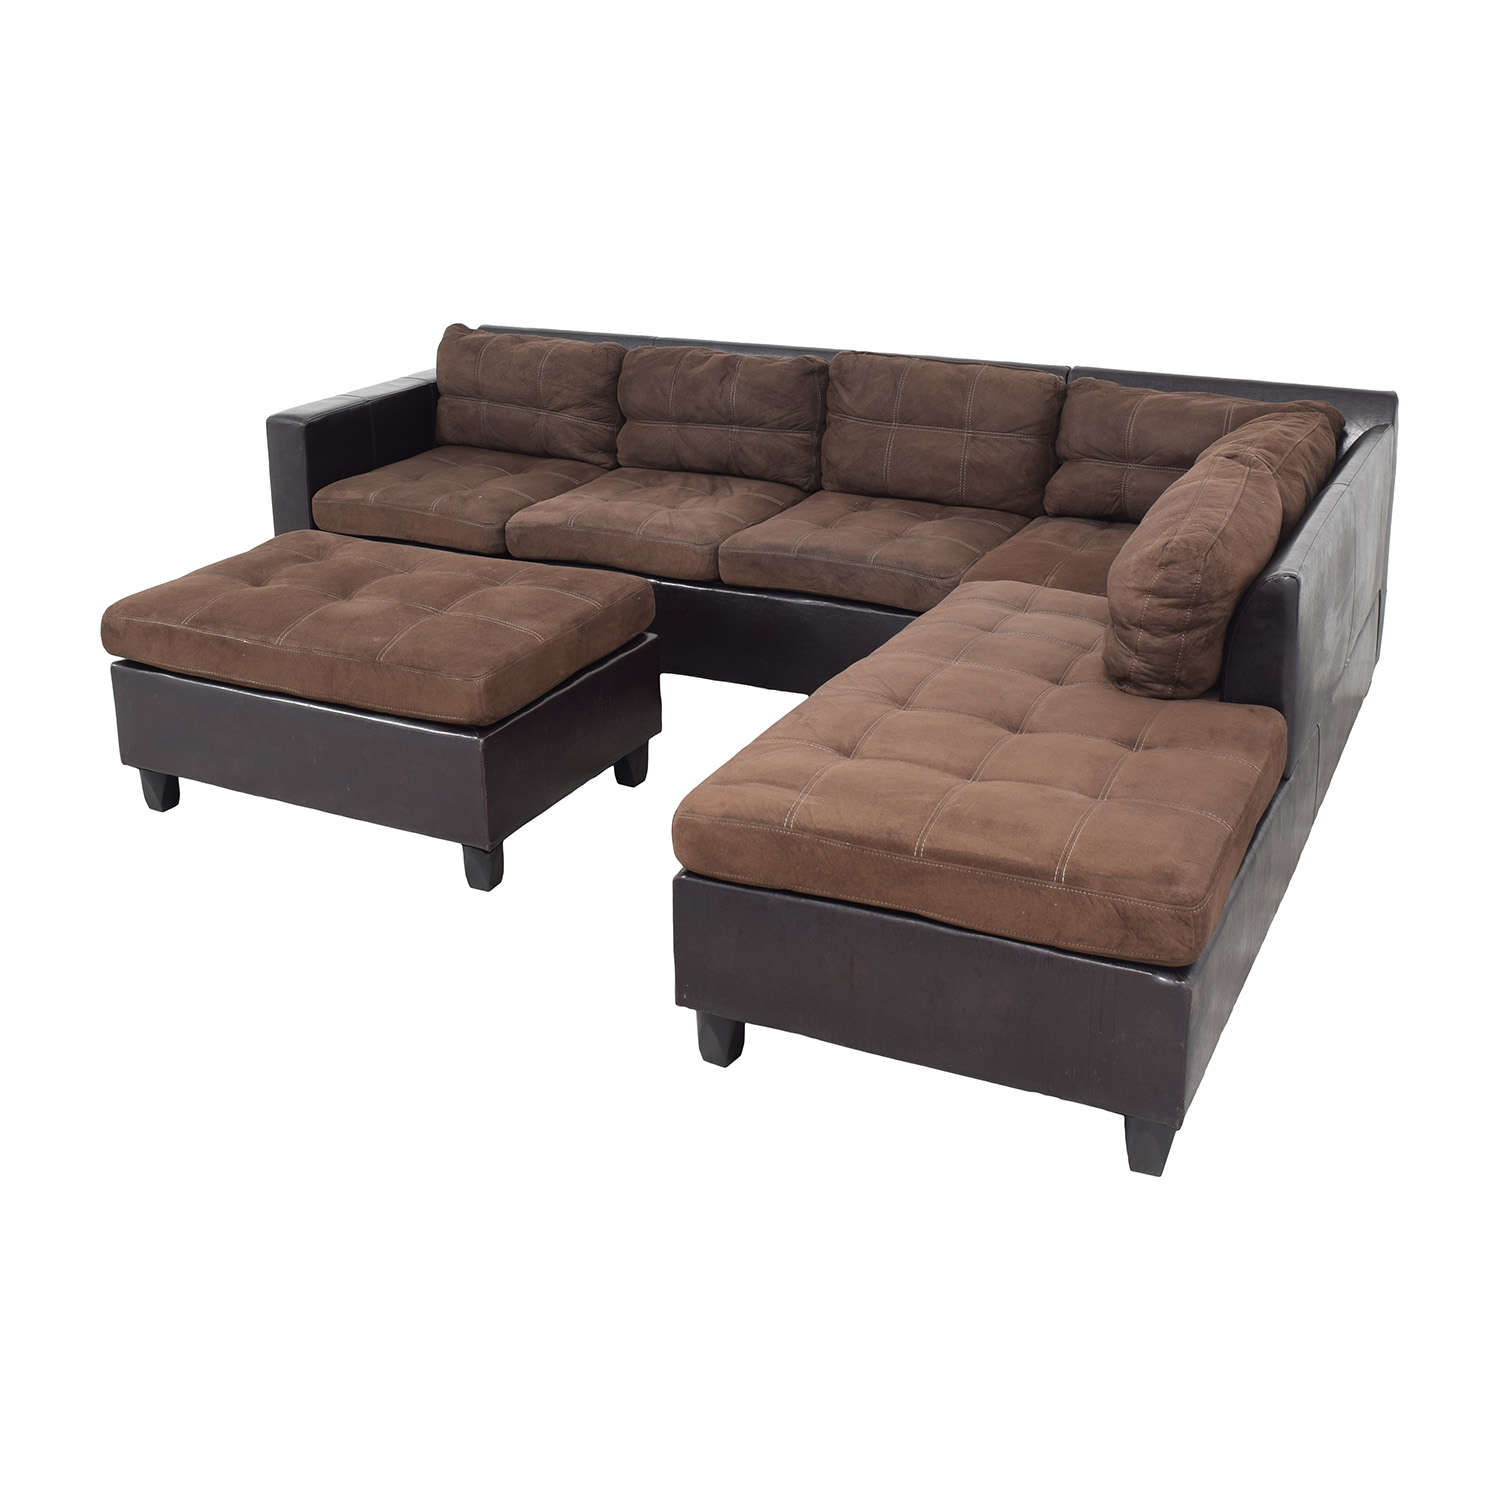 Chaise Sectional Sofa and Ottoman